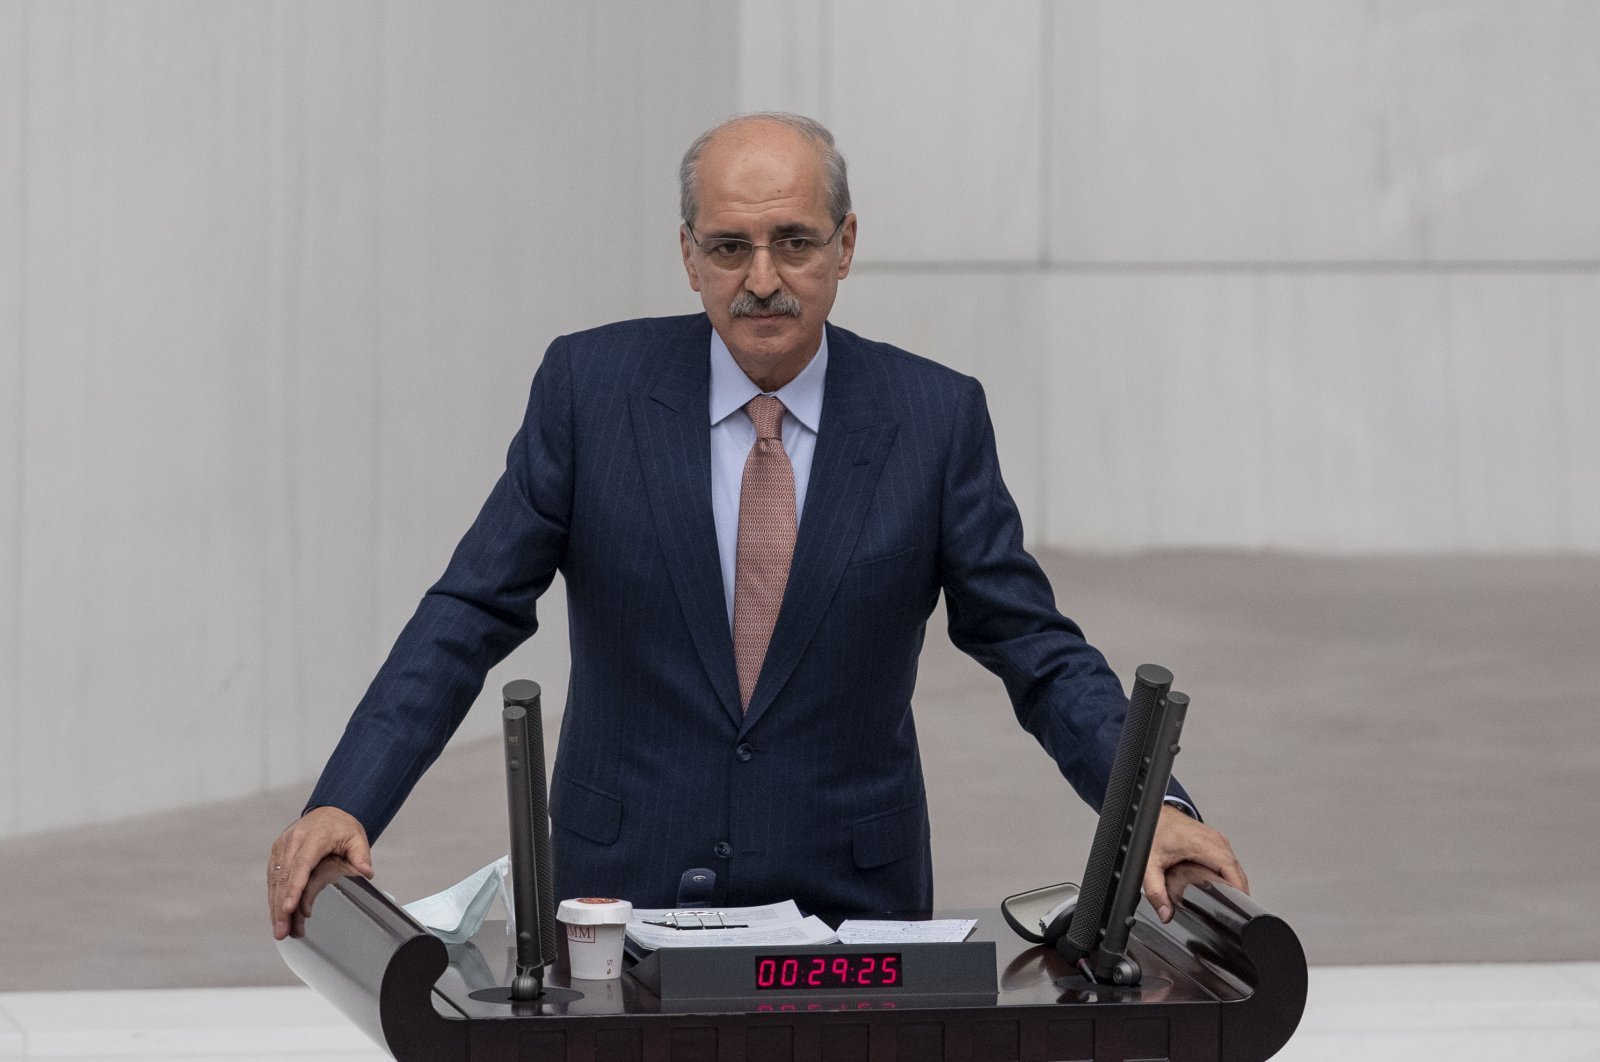 AK Party Deputy Chairperson Numan Kurtulmuş addresses lawmakers at a 2021 budget session in the Turkish Parliament on Dec. 7, 2020. (AA Photo)